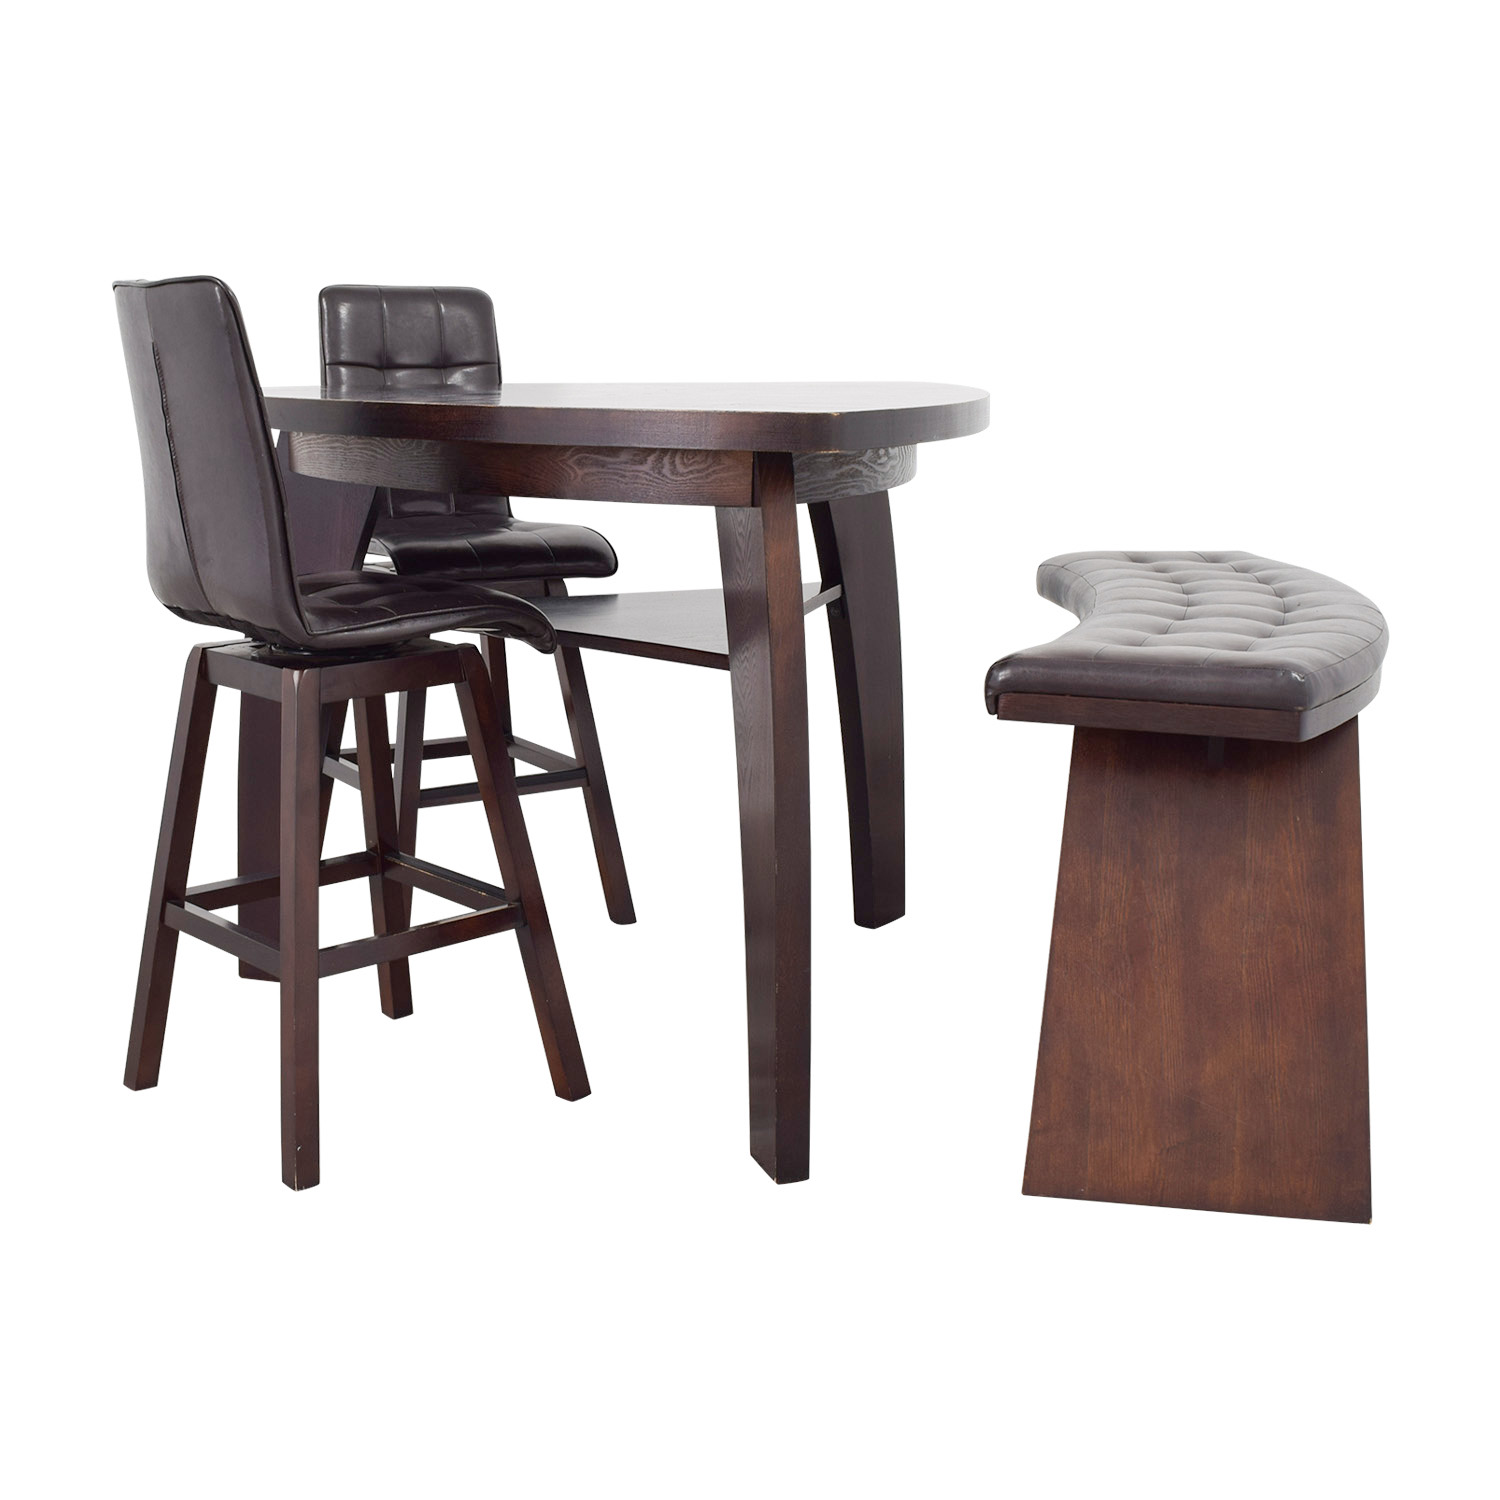 76 Off Bob 39 S Furniture Bob 39 S Furniture Boomerang Bar Stool And Bench Set Tables